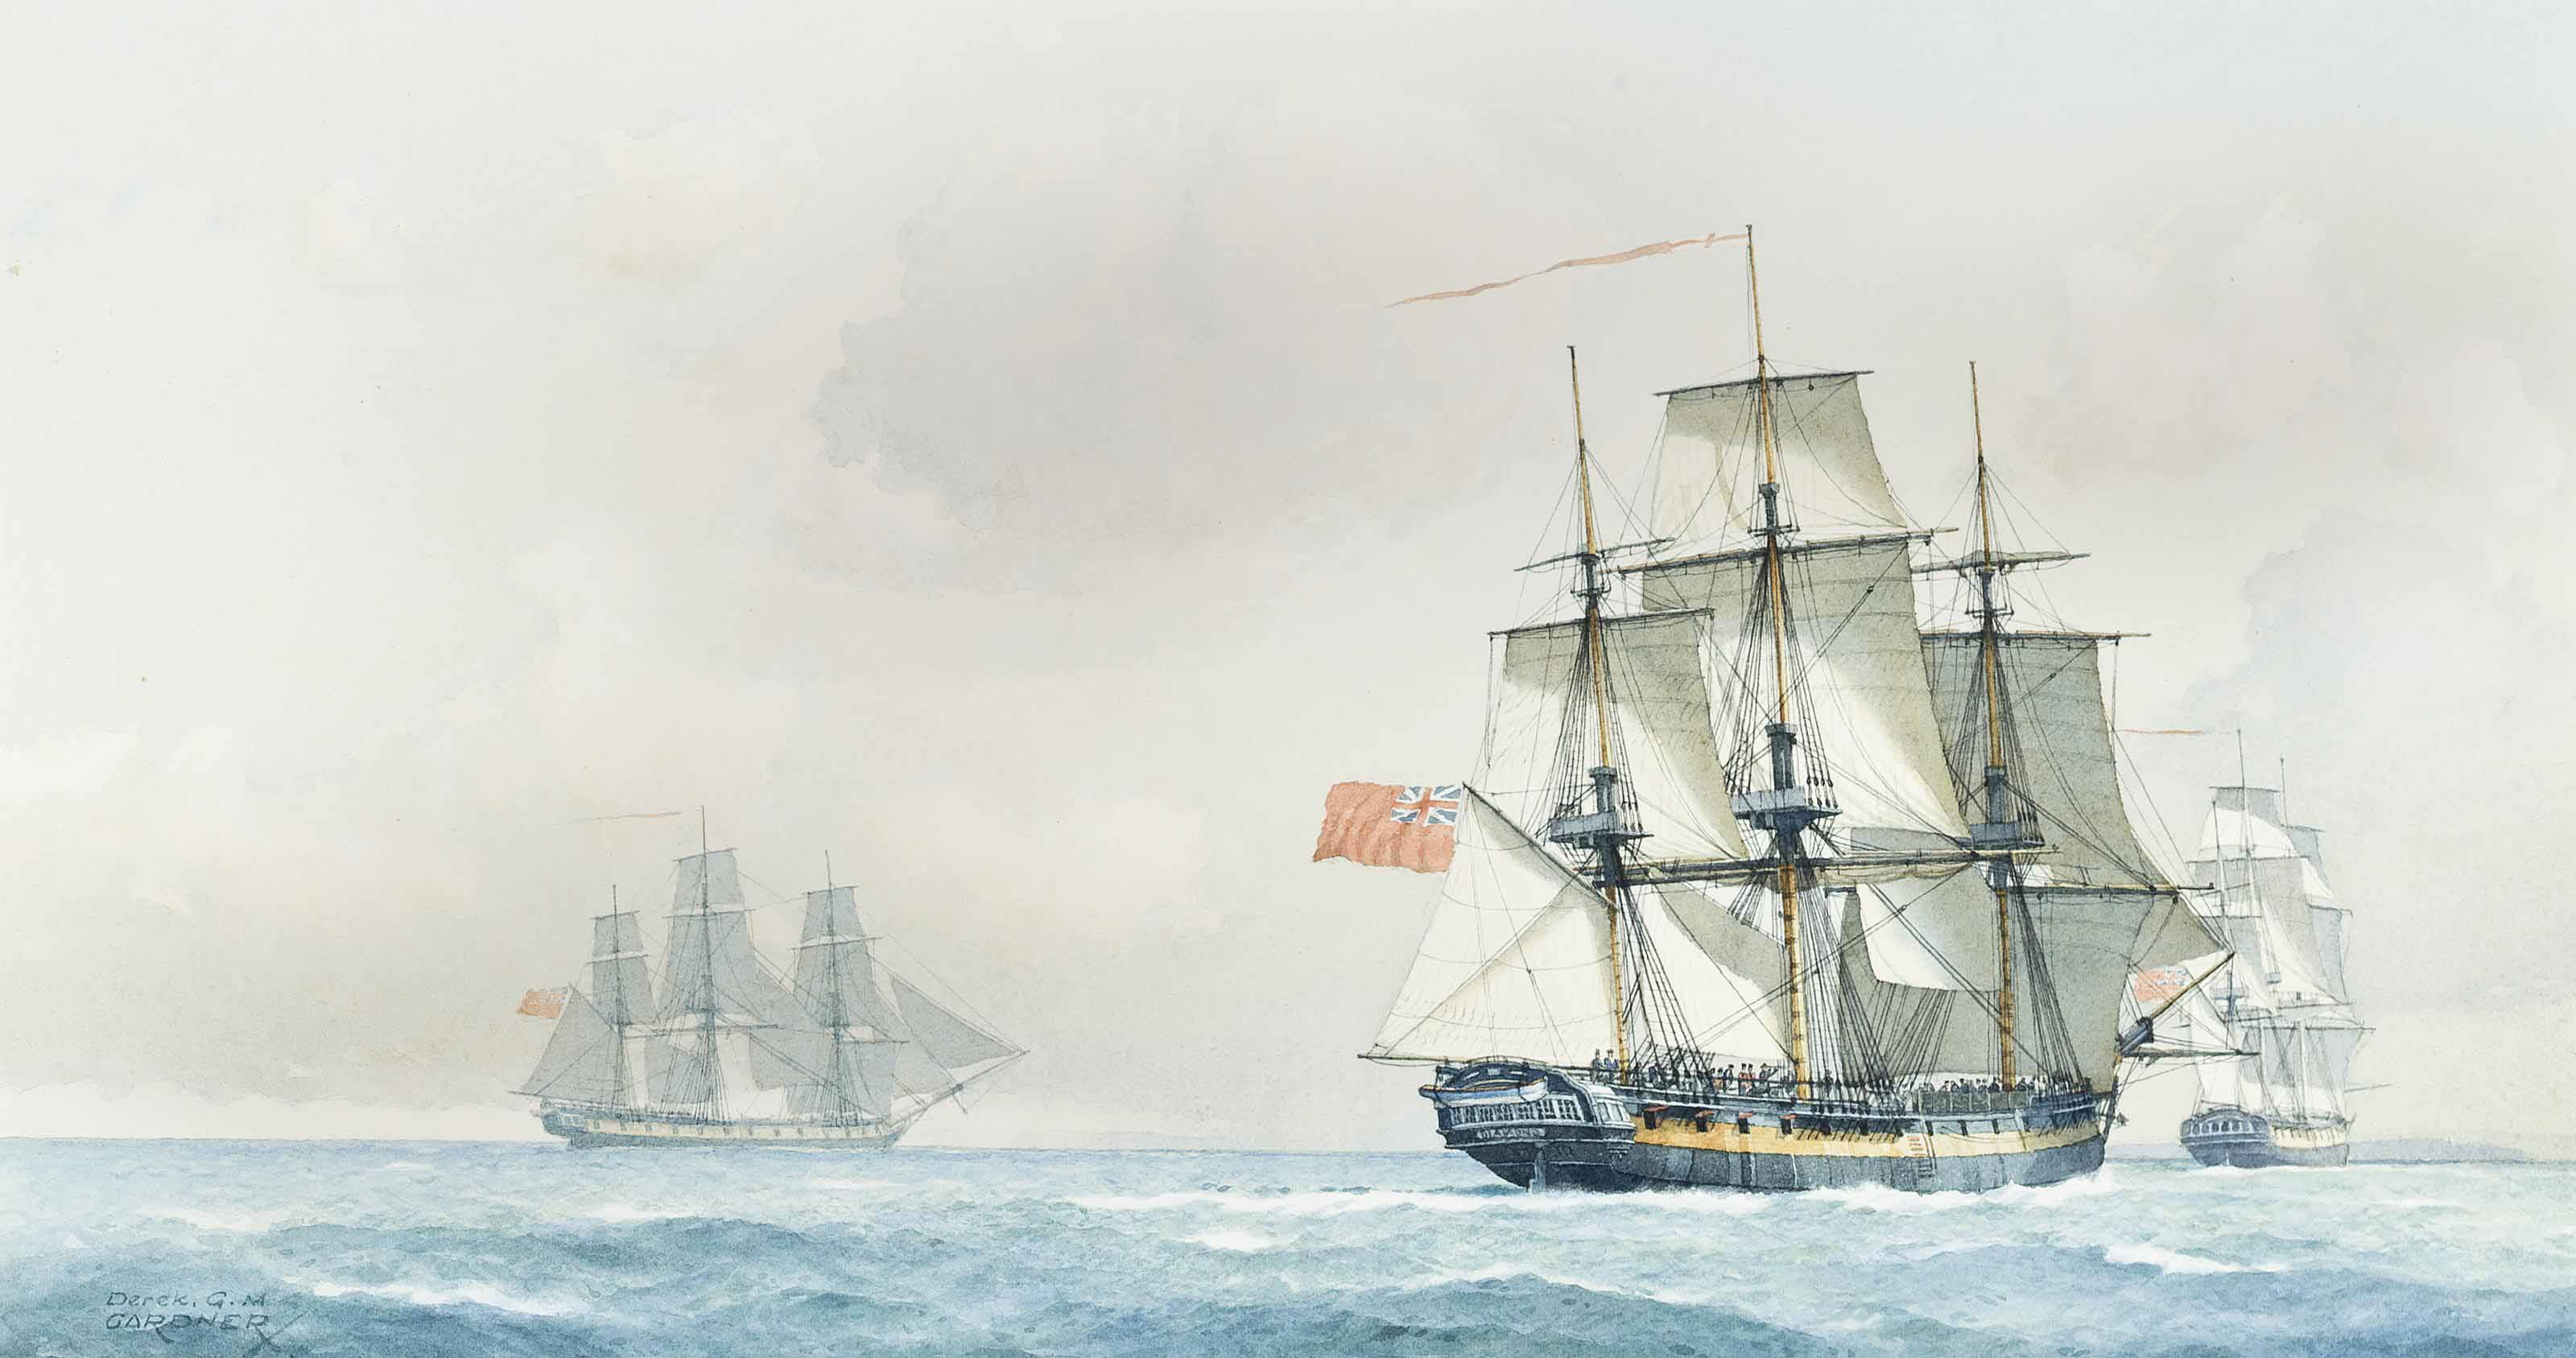 H.M. frigate Diamond, 38-guns, in company with H.M.S. Flora, 36-guns, and H.M.S. Arethusa, 38-guns, on passage to Brest, 2nd January, 1795